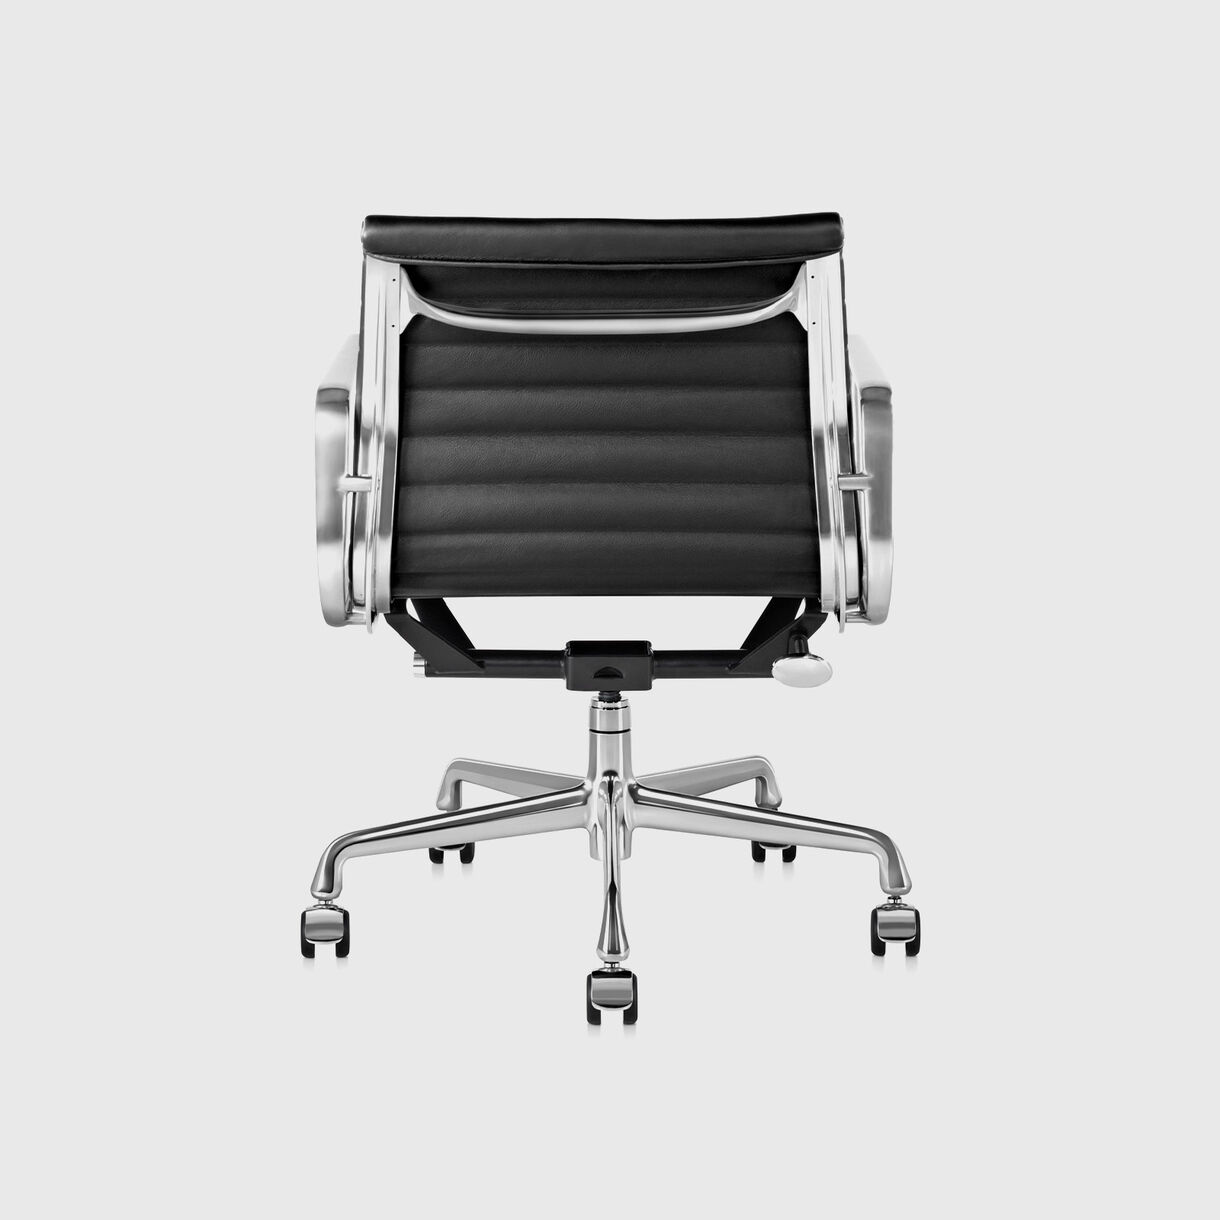 Eames Aluminum Group Management Chair, Chrome Finish with Black Leather